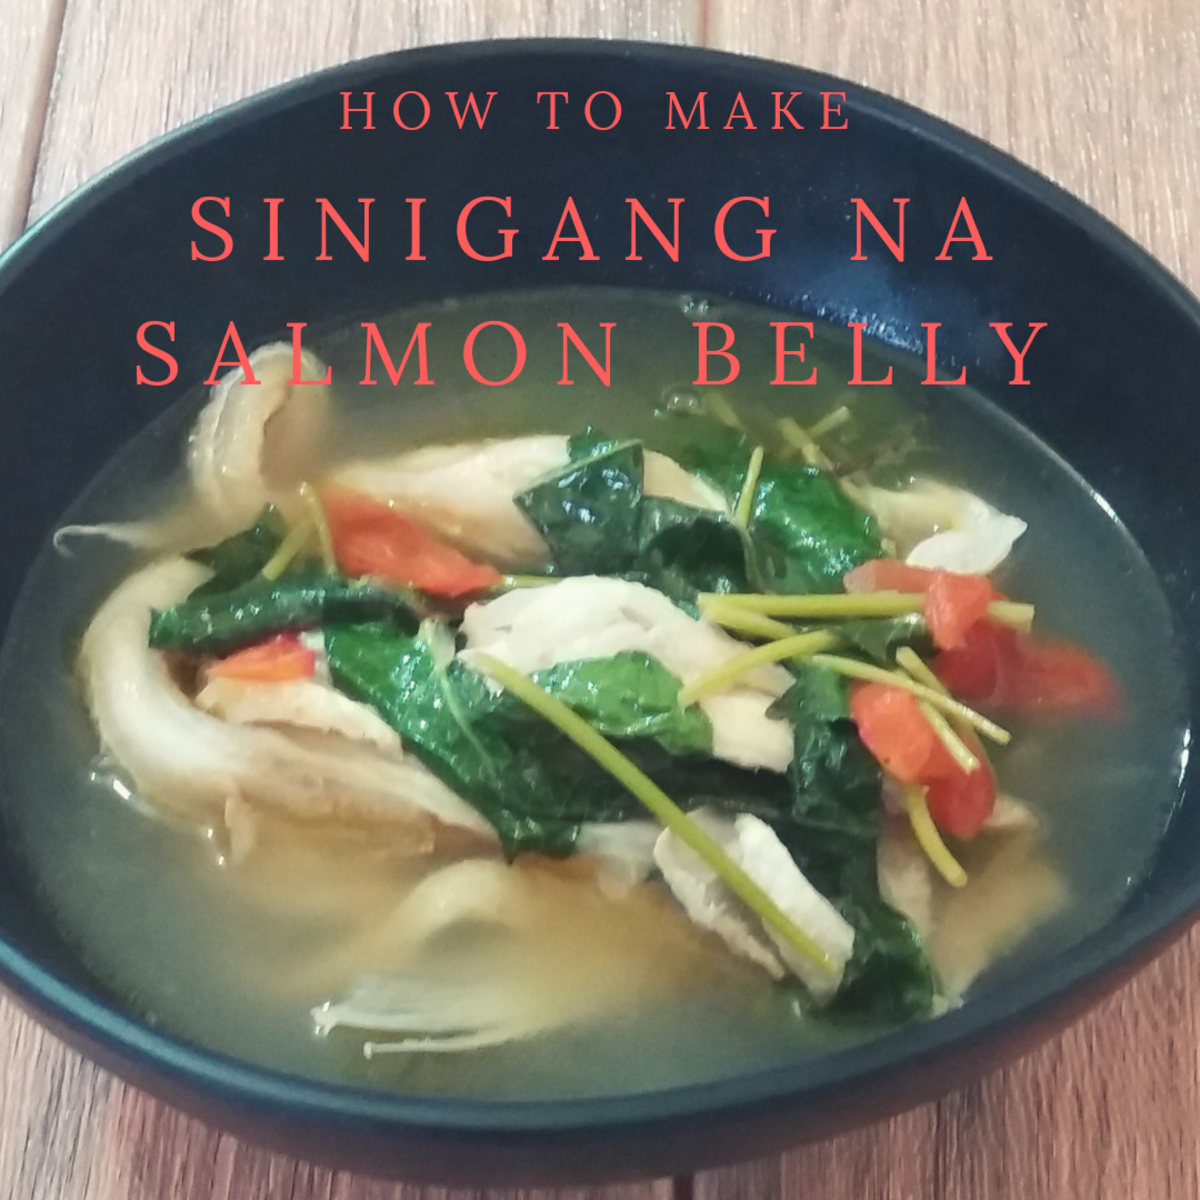 How to Make Sinigang na Salmon Belly: A Filipino-Inspired Dish